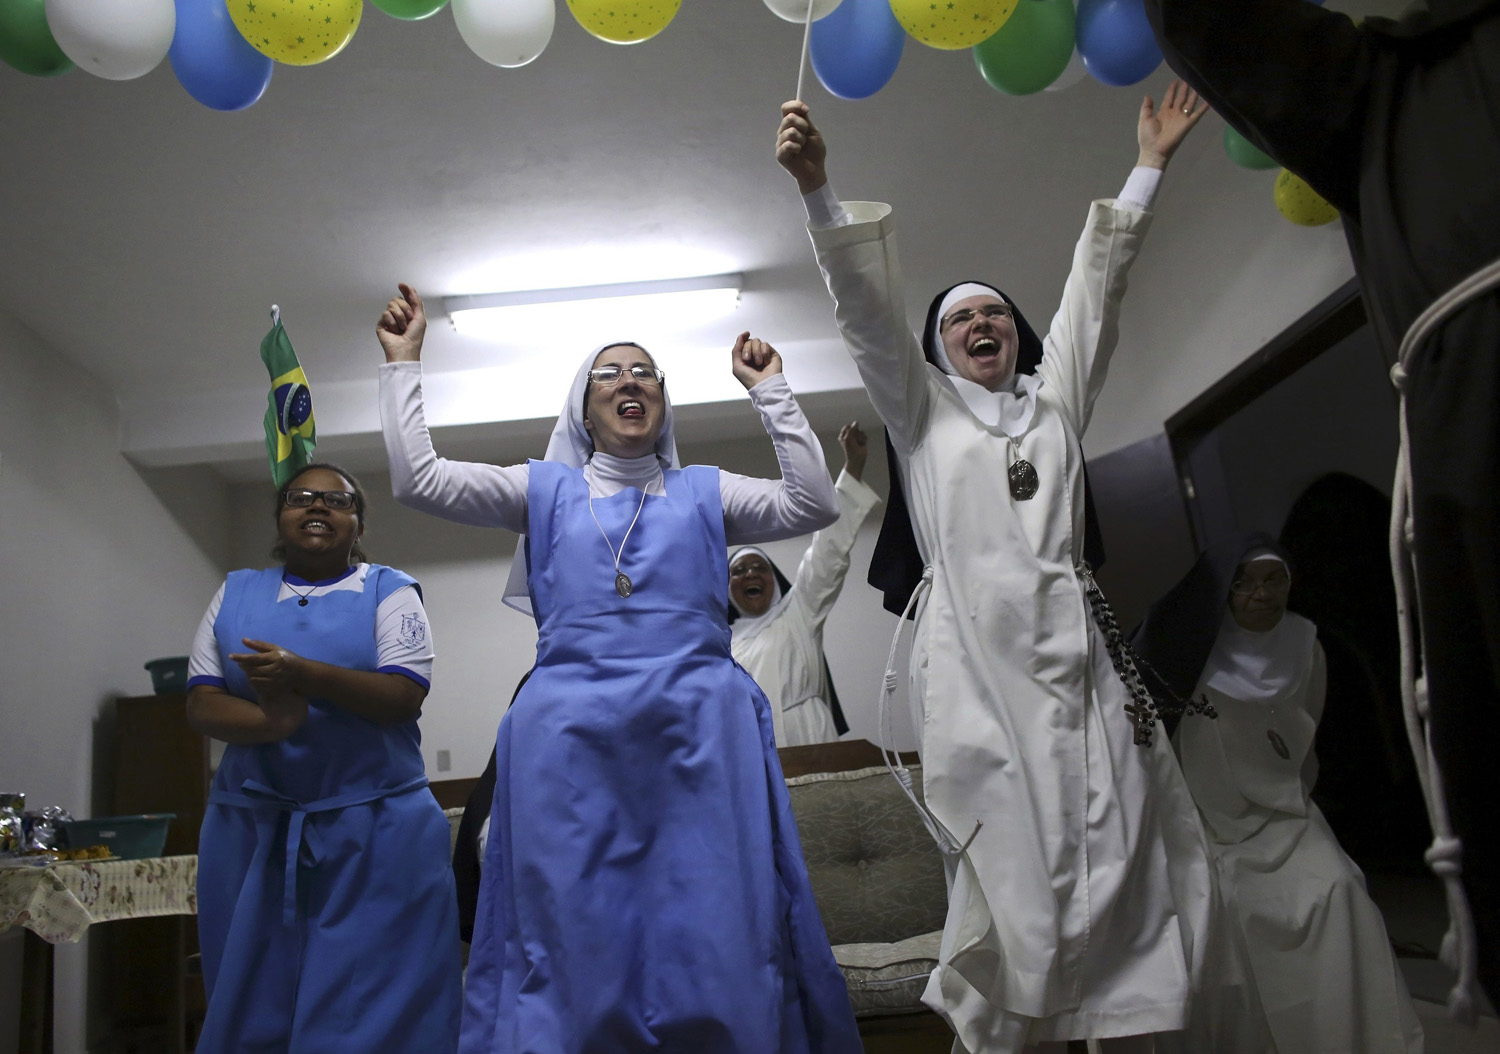 Nuns from the enclosed monastery of Imaculada Conceicao celebrate Brazil's victory as they watch on television at the end of the 2014 World Cup quarter-final soccer match between Brazil and Colombia in Piratininga, Brazil on July 4, 2014.